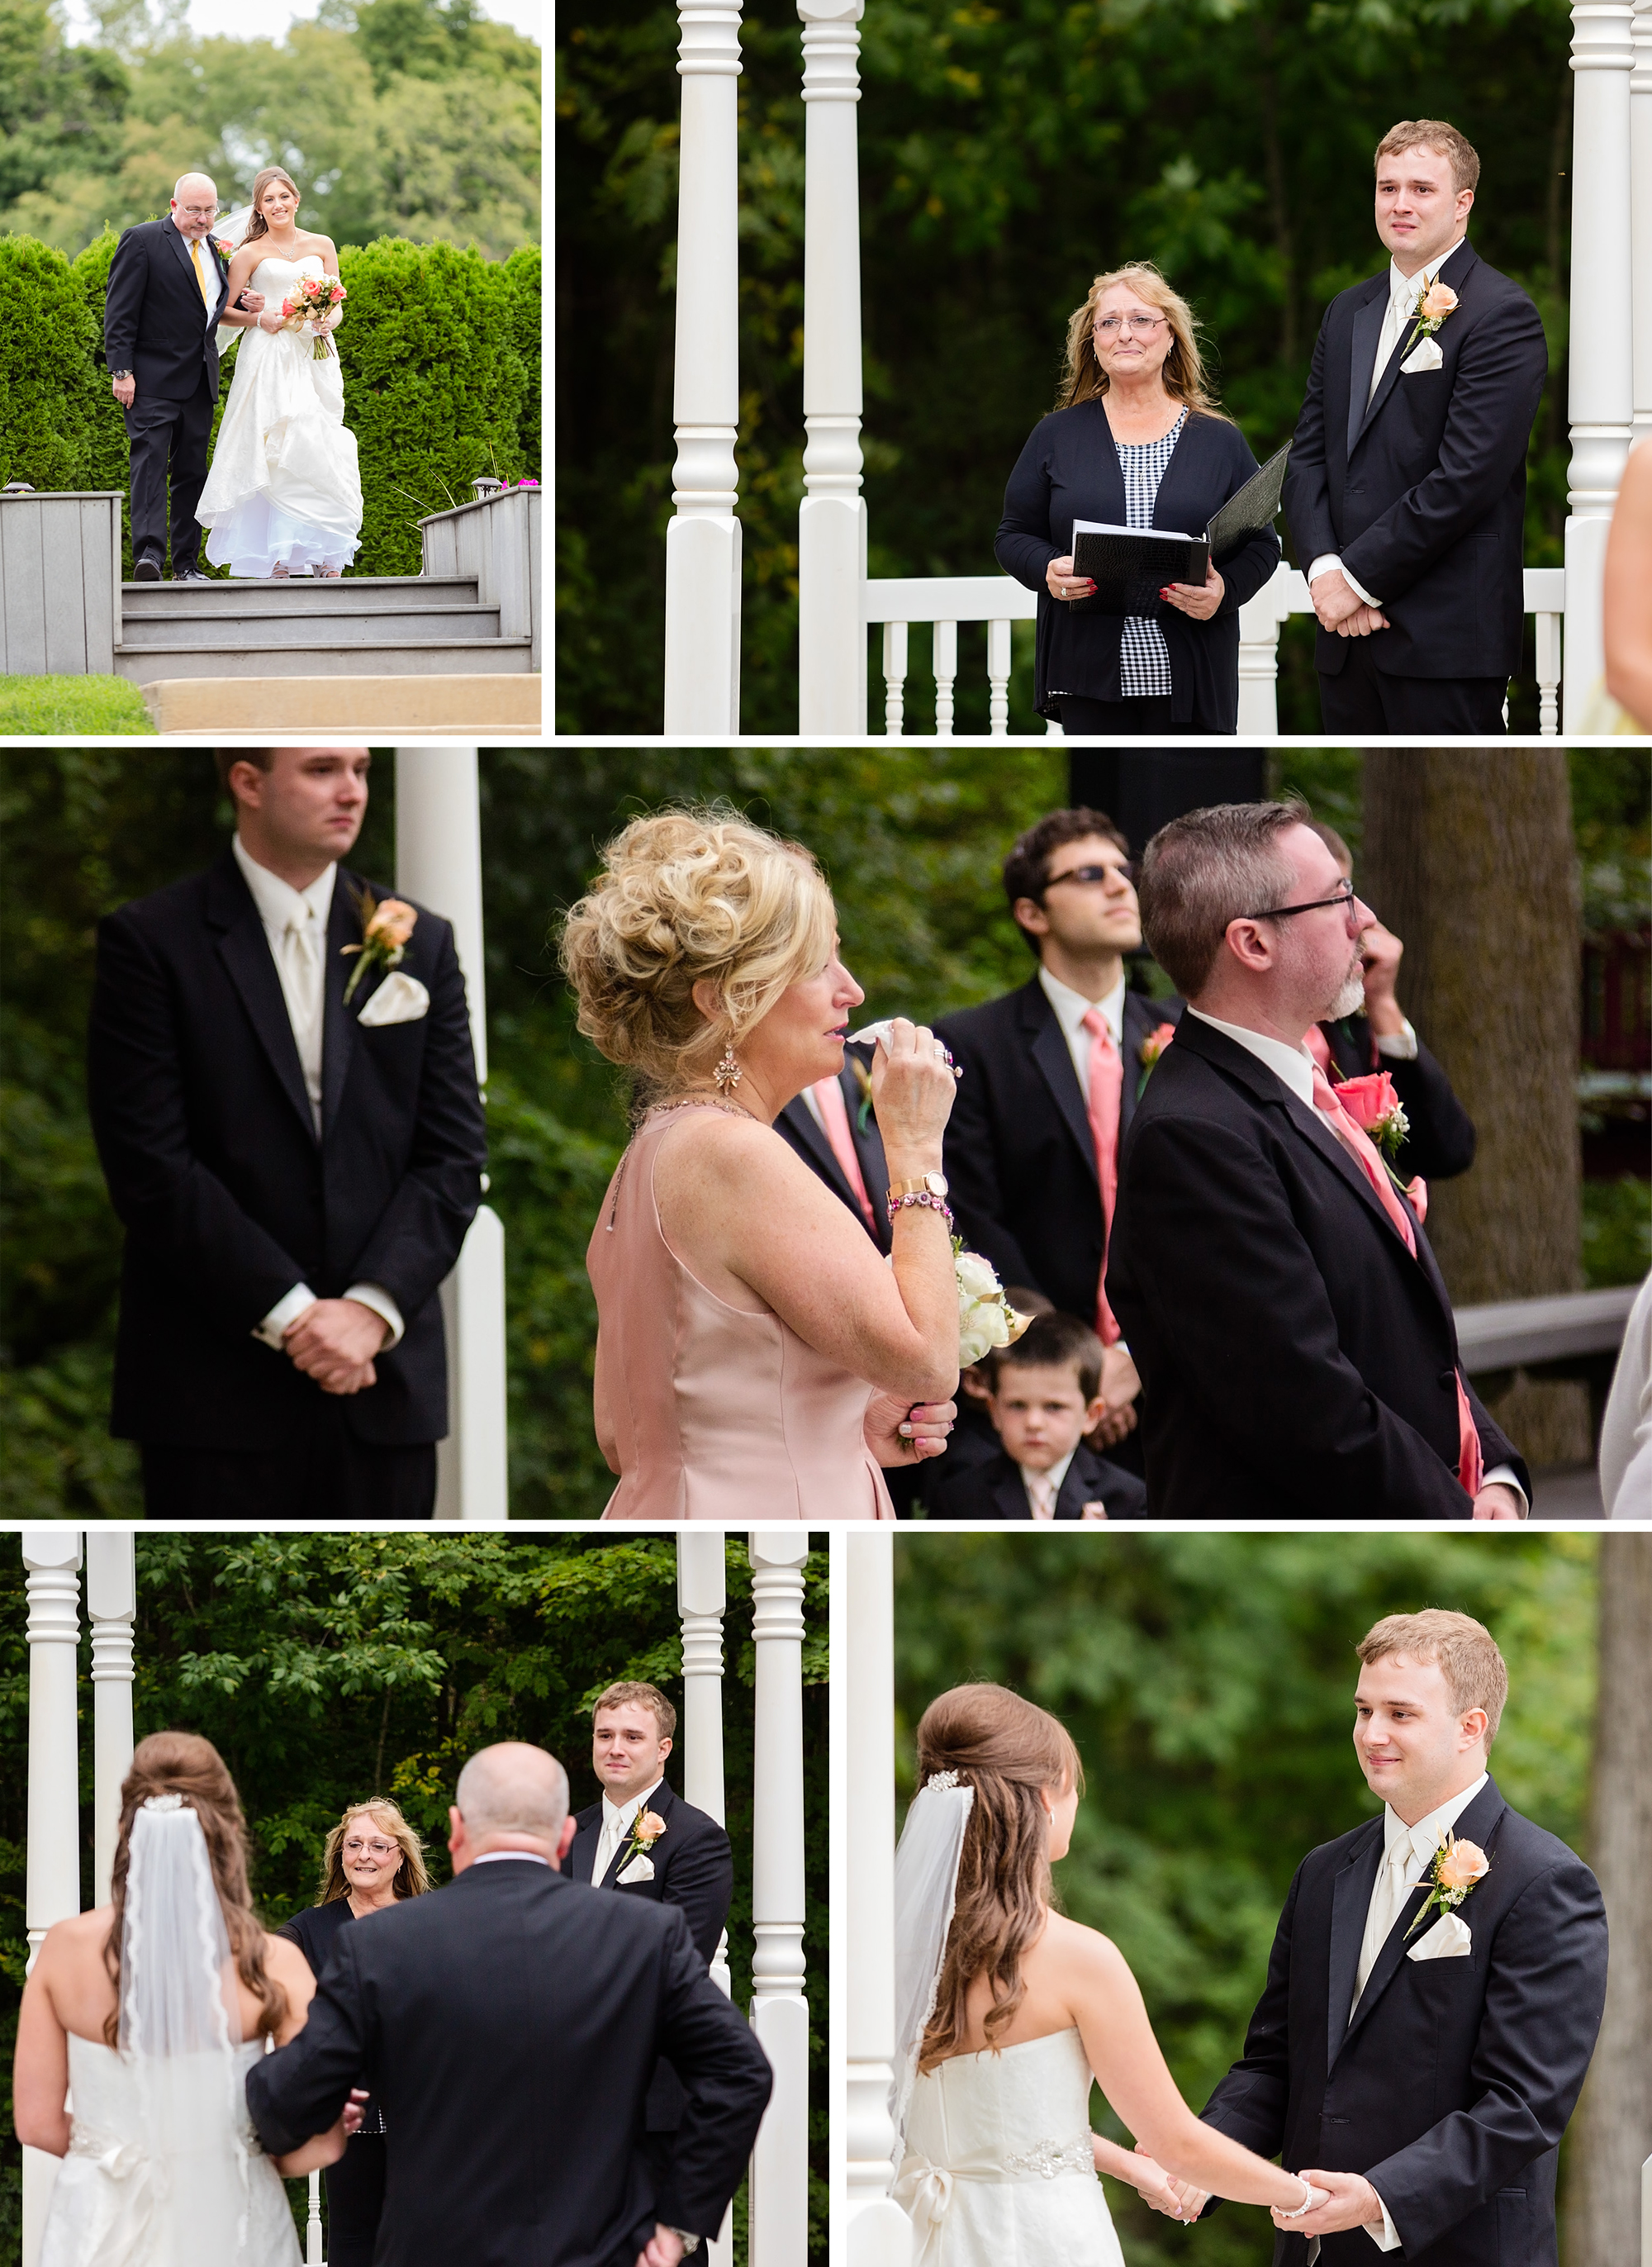 Hart_wedding_blogCollage-4.jpg